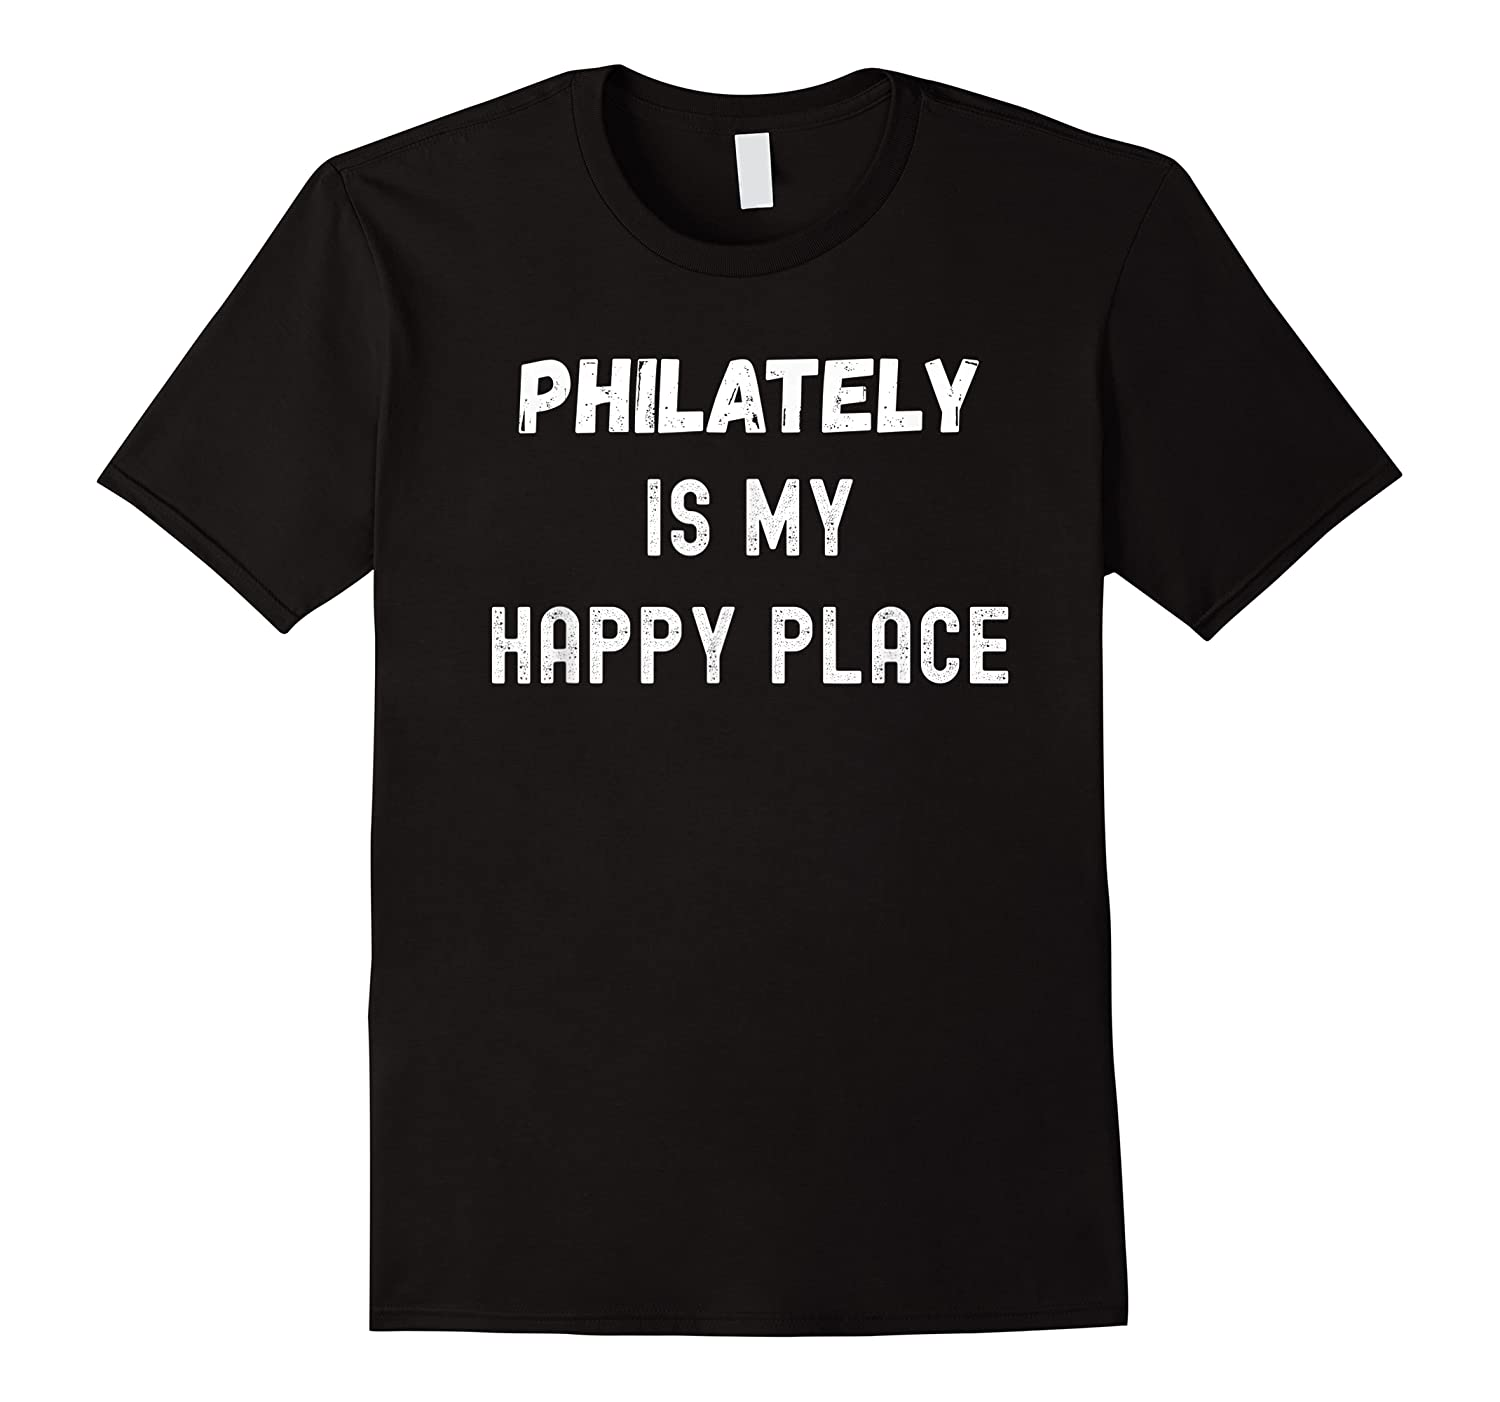 Funny Philately Gift, Philately Is My Happy Place Shirts